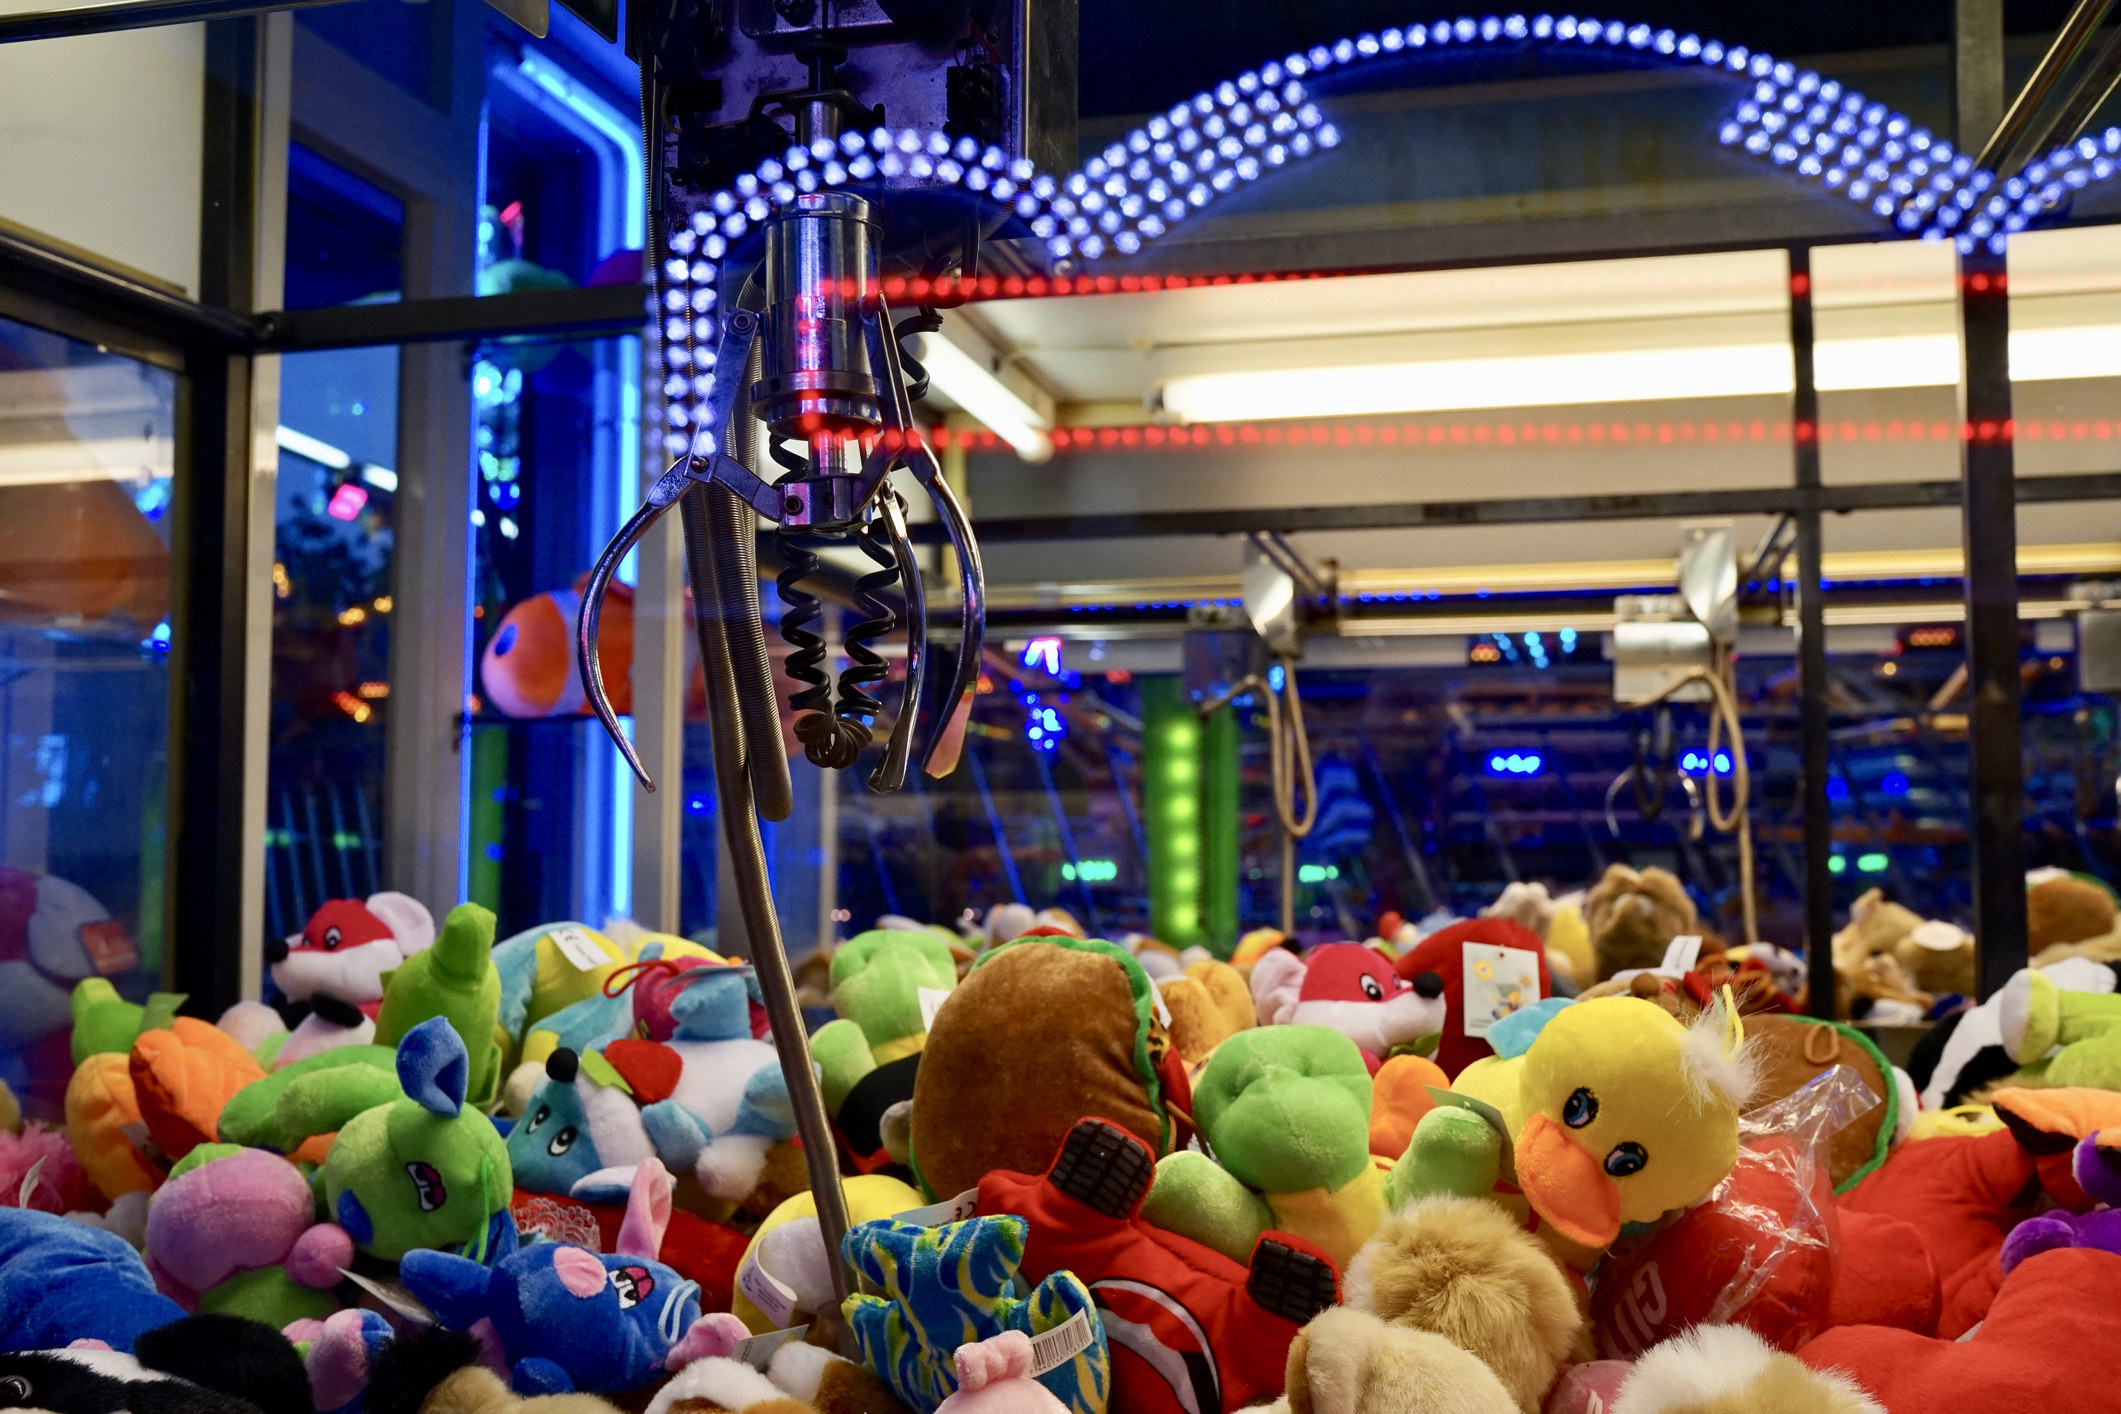 View from inside a claw machine just above a layer of toys with claw hanging over